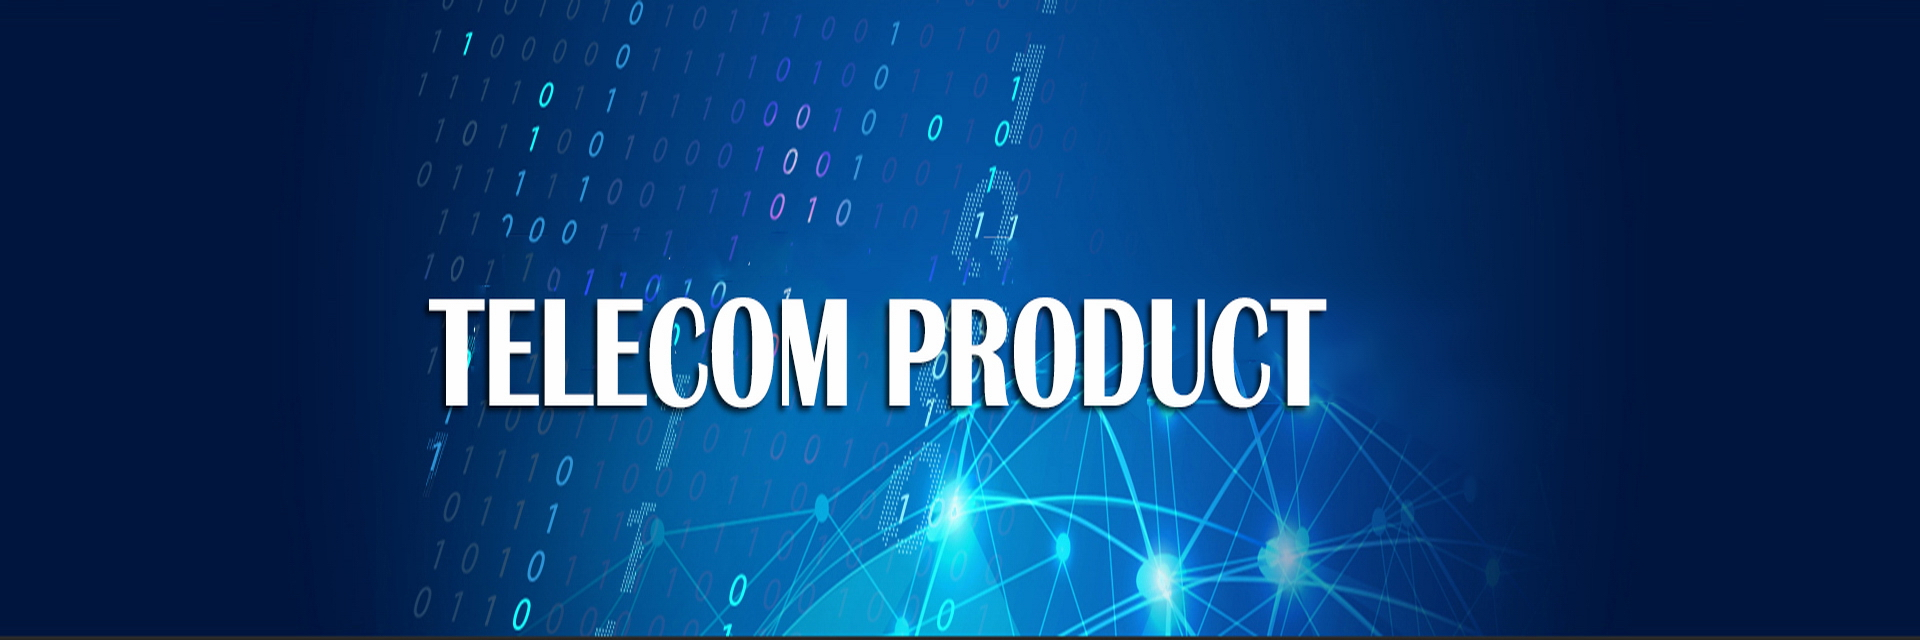 Telecom Product Product